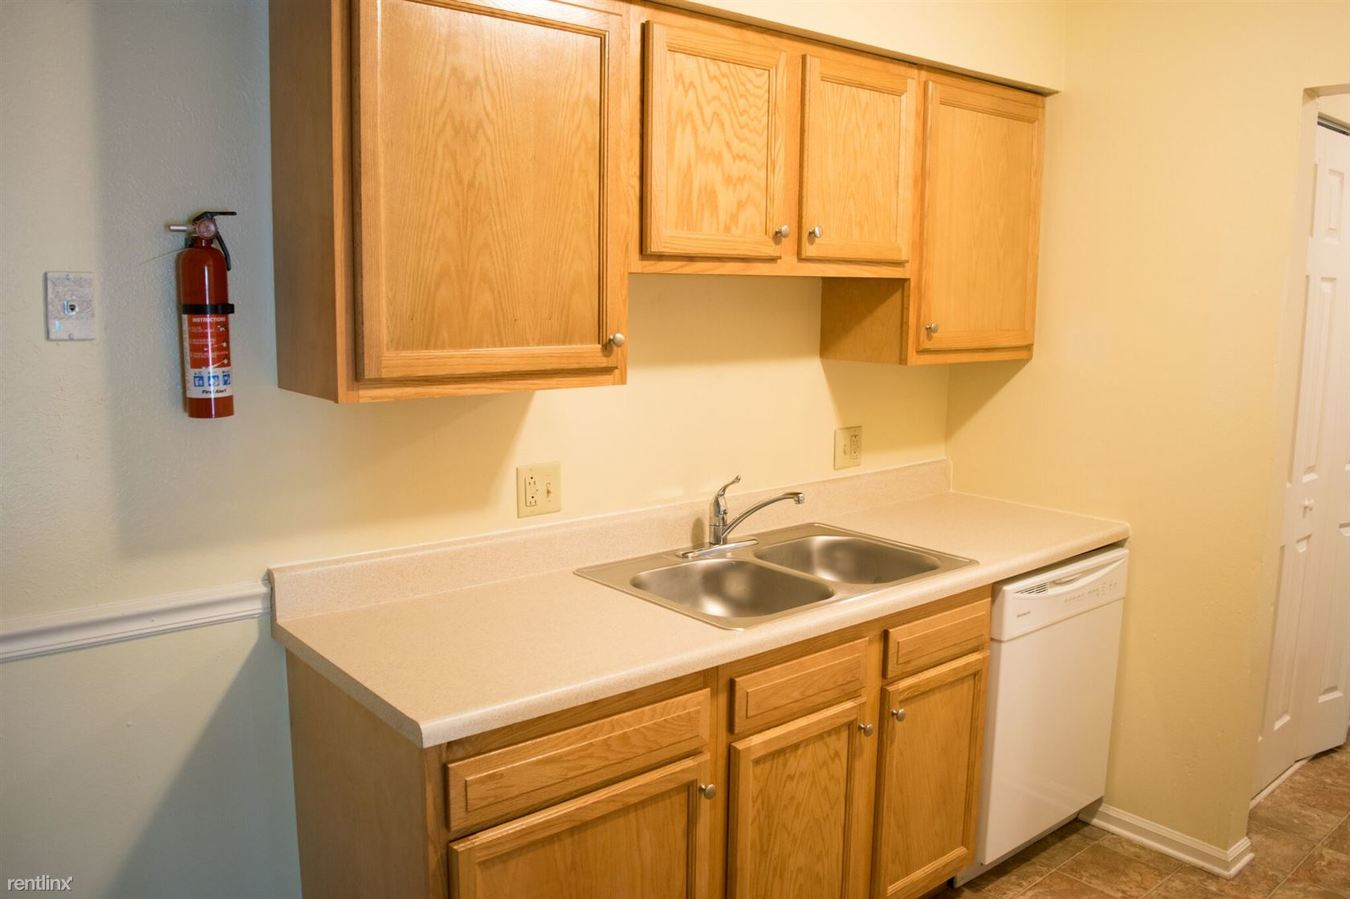 1 Bedroom 1 Bathroom Apartment for rent at Five Points Courtyard Apartments in Toledo, OH